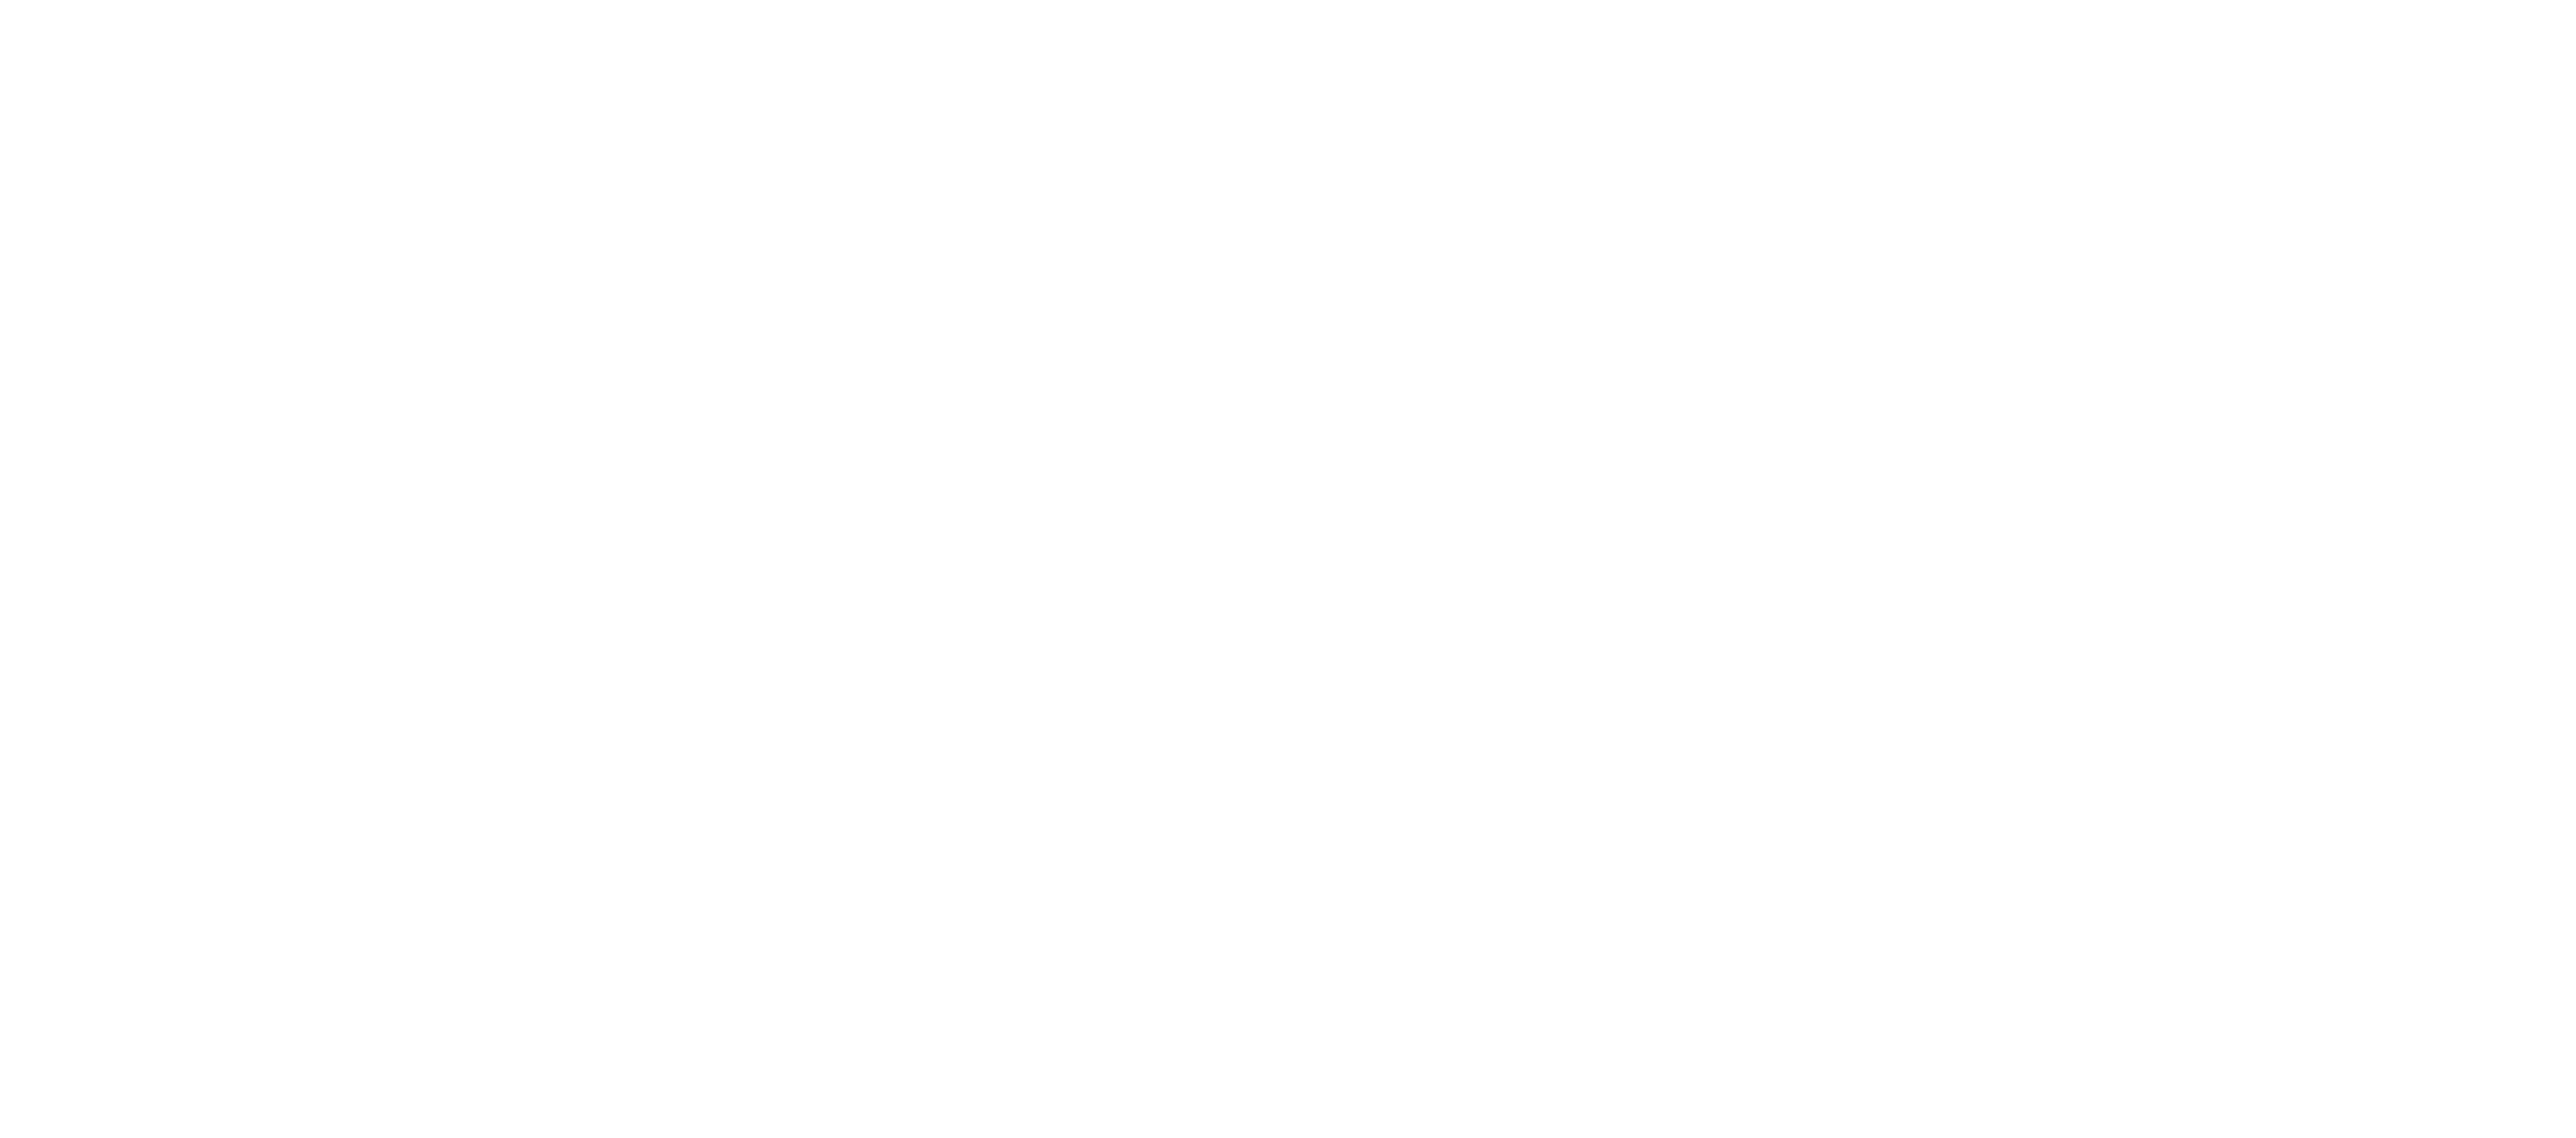 Wedding Photographer | Cardiff | South Wales